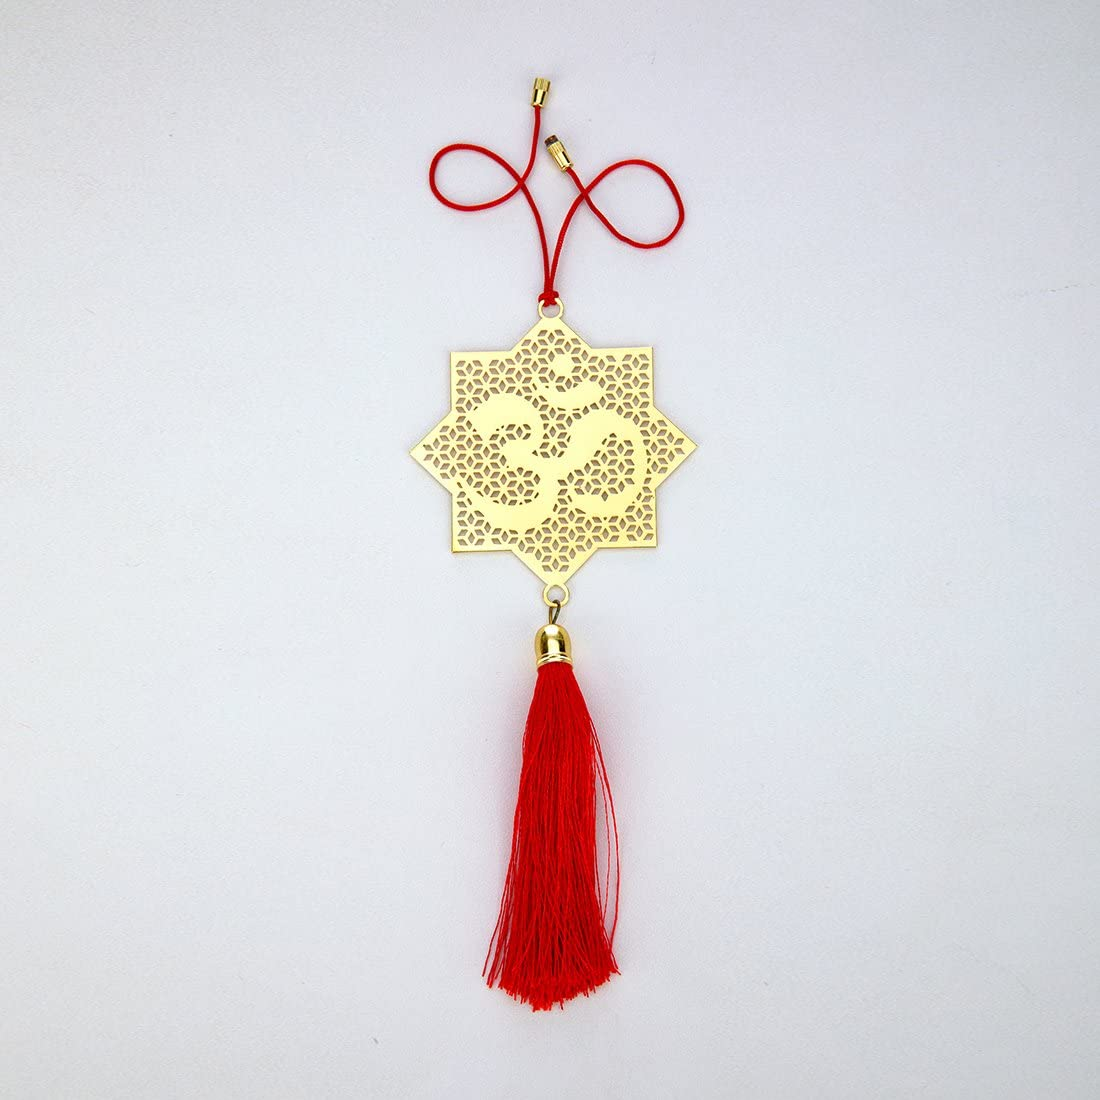 ADORAA Hindu OM/AUM Symbol - Rear View Mirror Car Hanging Ornament/Perfect Car Charm Pendant/Amulet - Accessories for Car Décor in Brass for Divine Blessings & Safety/Protection - Jaali